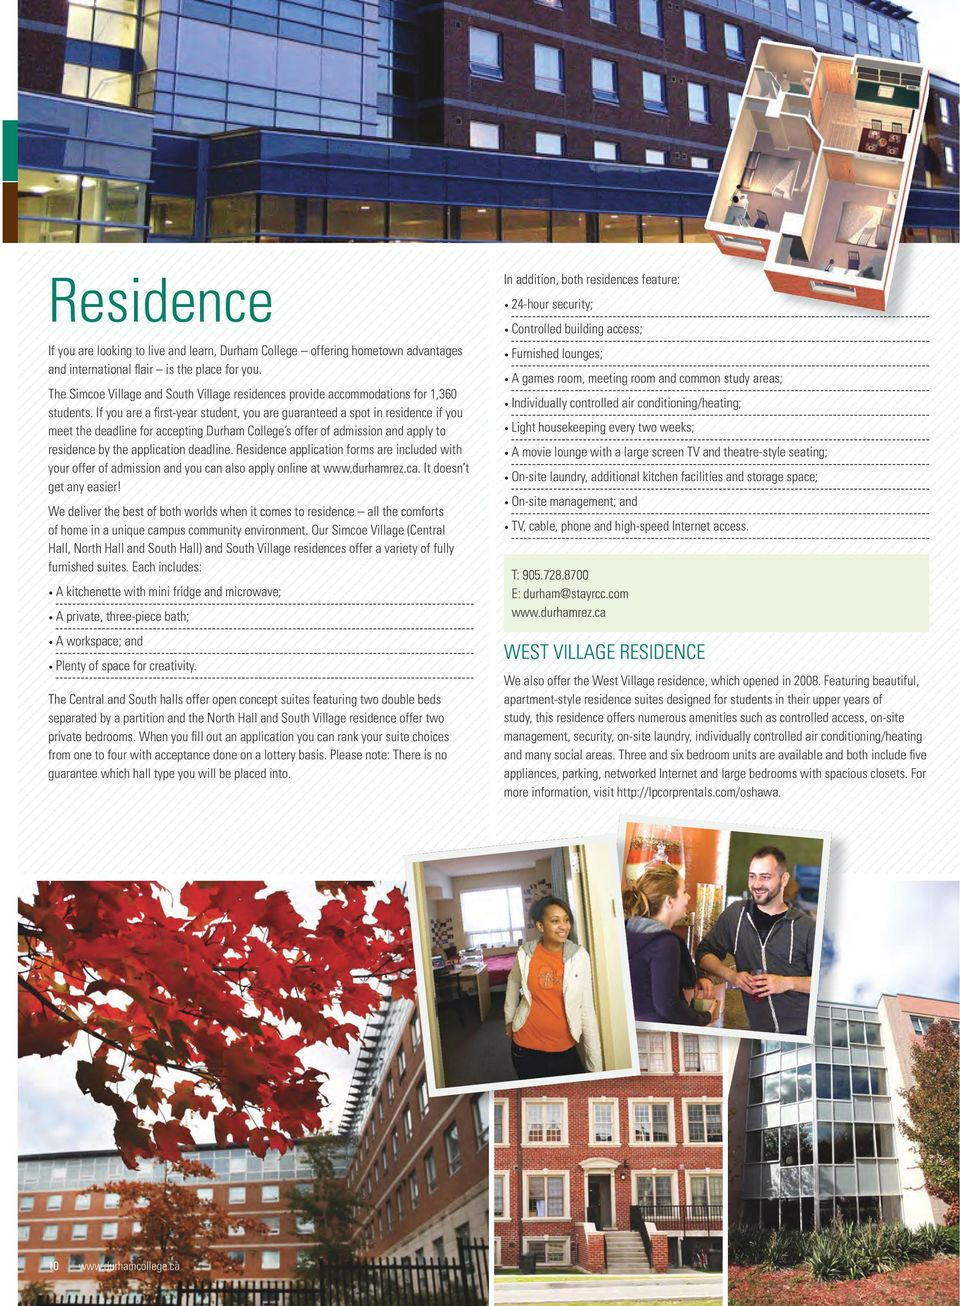 If you are a first-year student, you are guaranteed a spot in residence if you meet the deadline for accepting Durham College s offer of admission apply to residence by the application deadline.